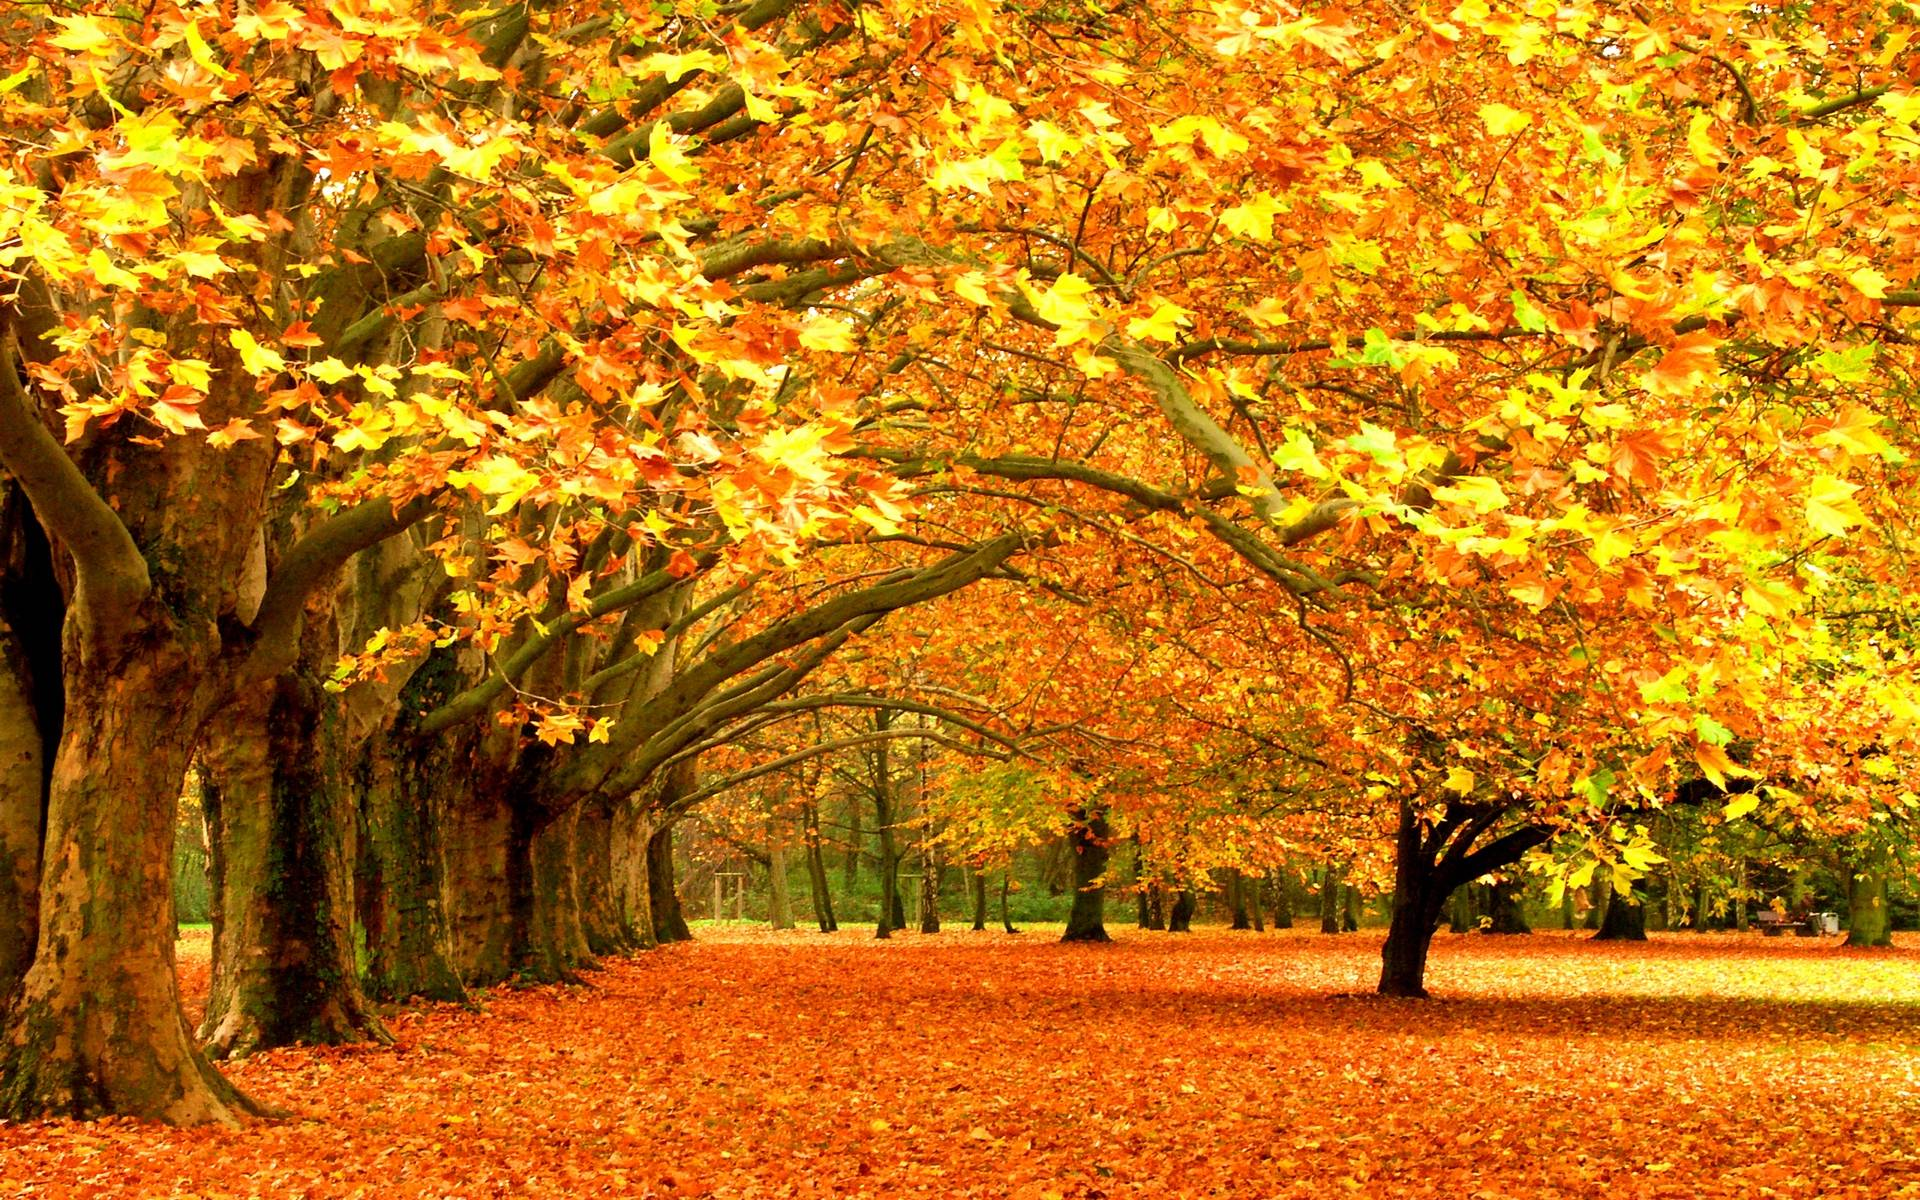 Fall-Season-HD-Landscape-Picture.jpg